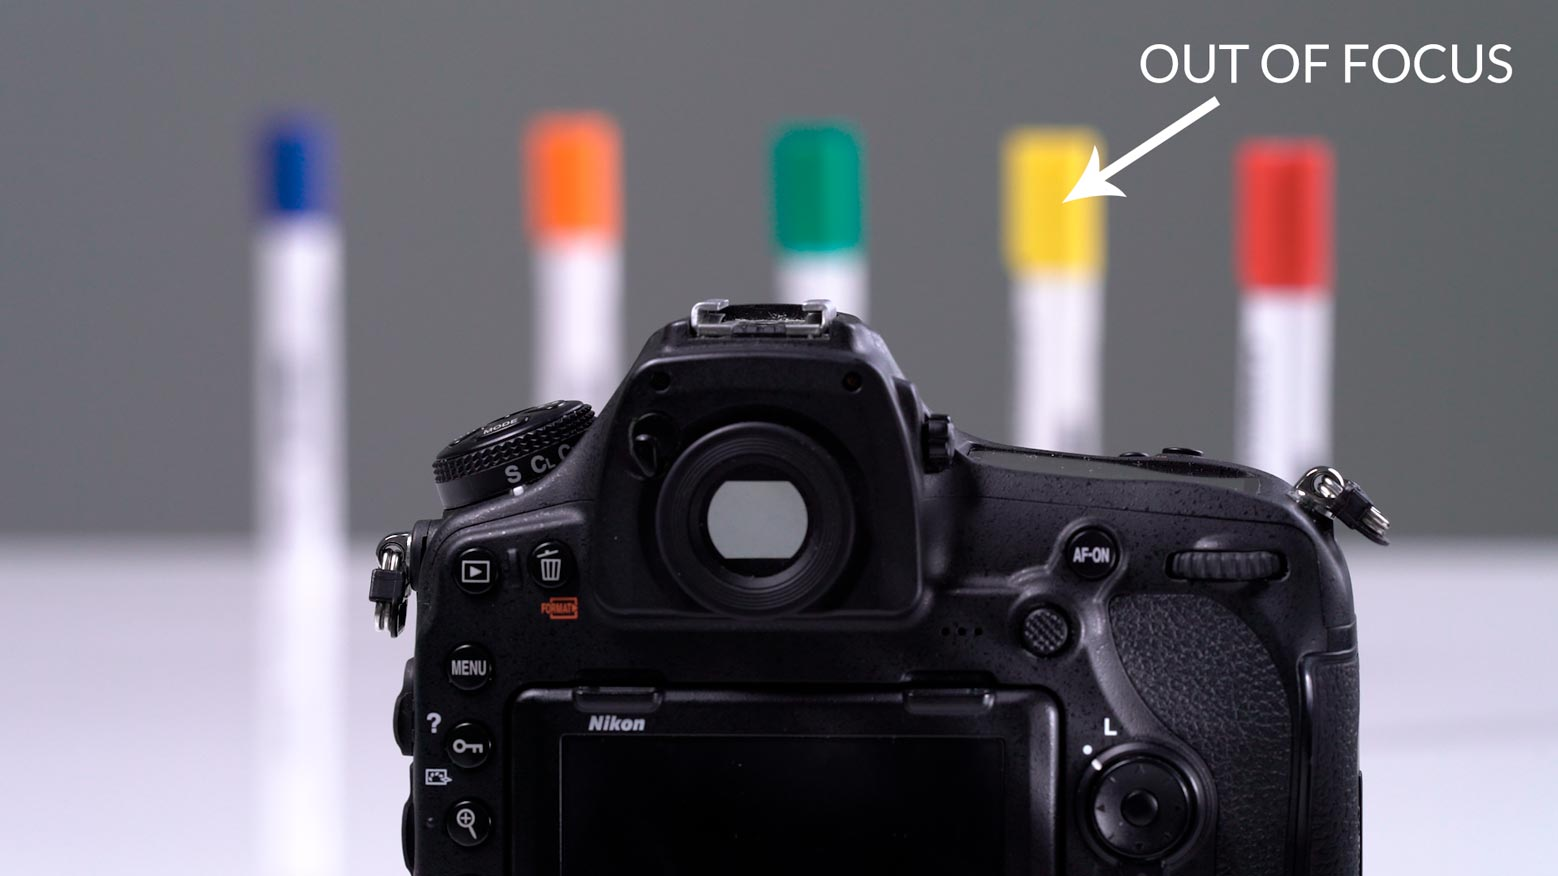 Example showing camera in focus with distant subject out of focus.